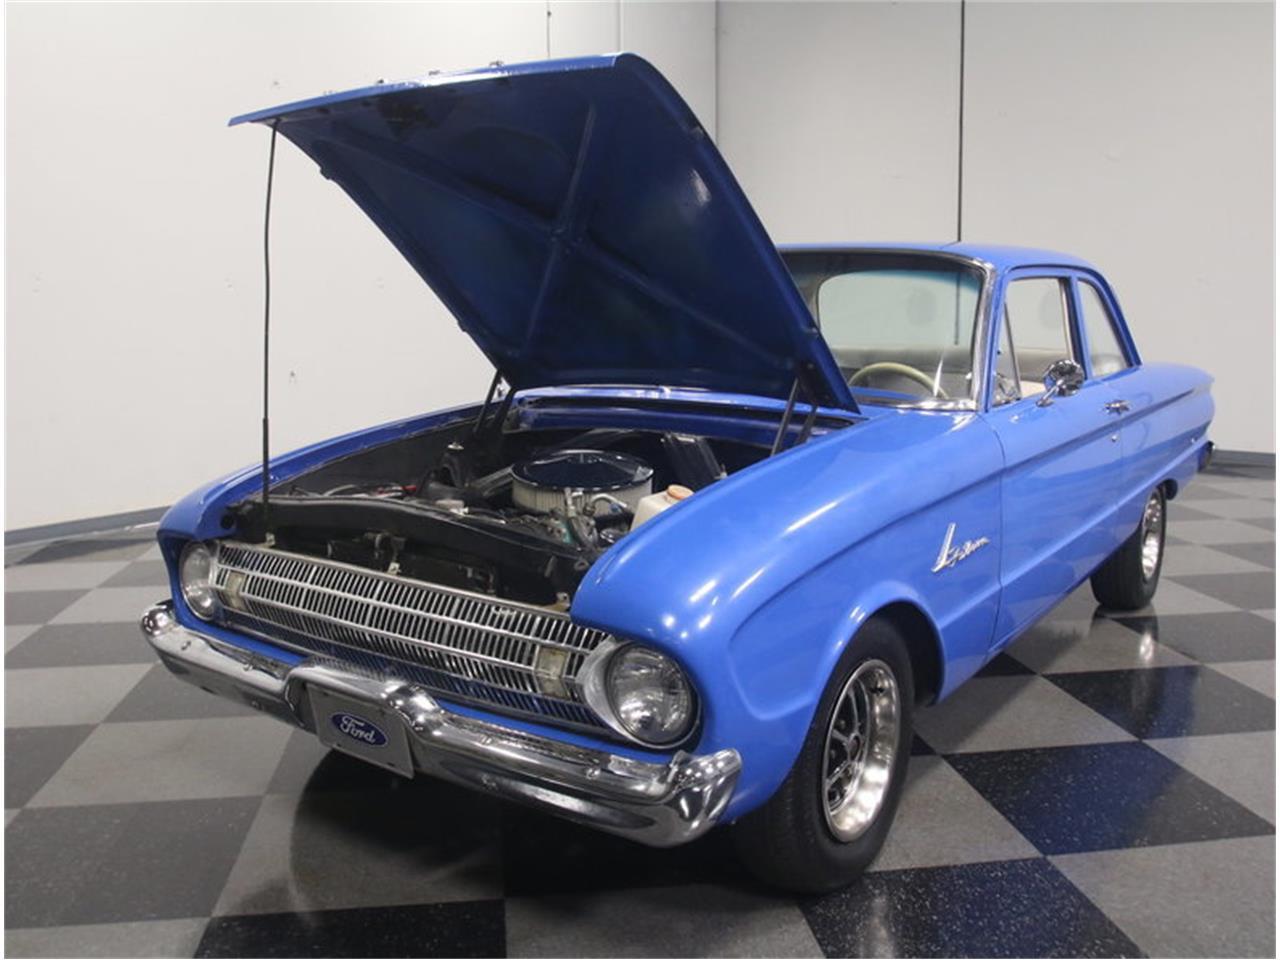 Large Picture of 1962 Ford Falcon - $14,995.00 Offered by Streetside Classics - Atlanta - MH3Z